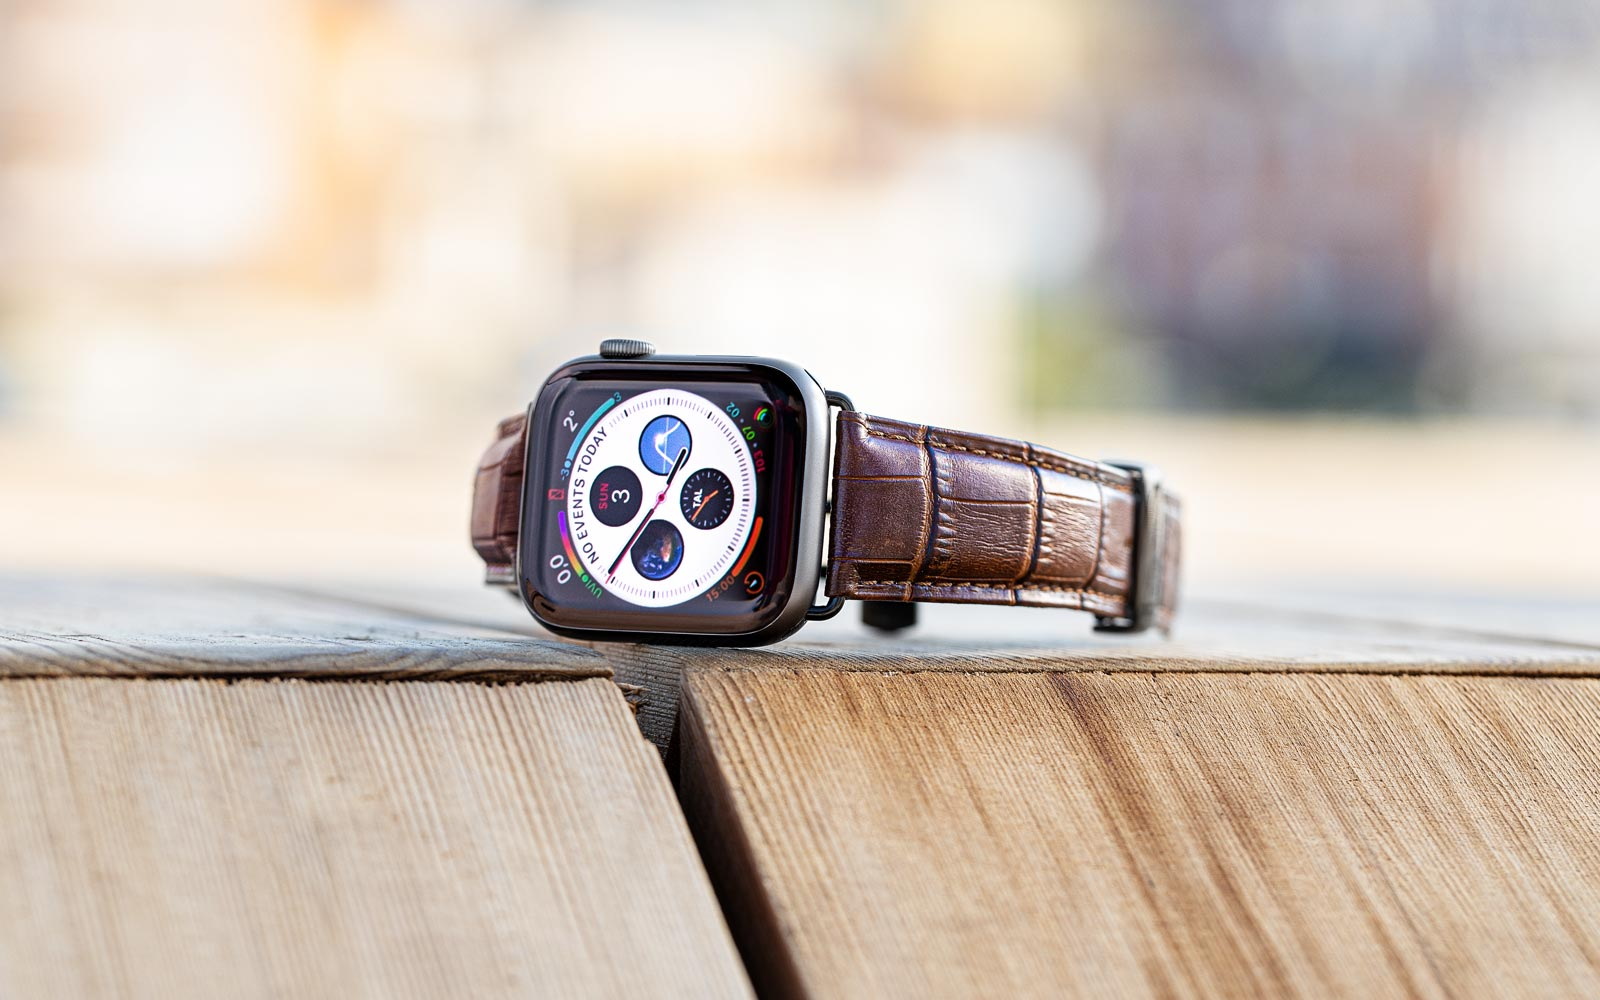 9to5Rewards: Apple Watch Series 5 giveaway + 15% off Longvadon luxury Watch straps